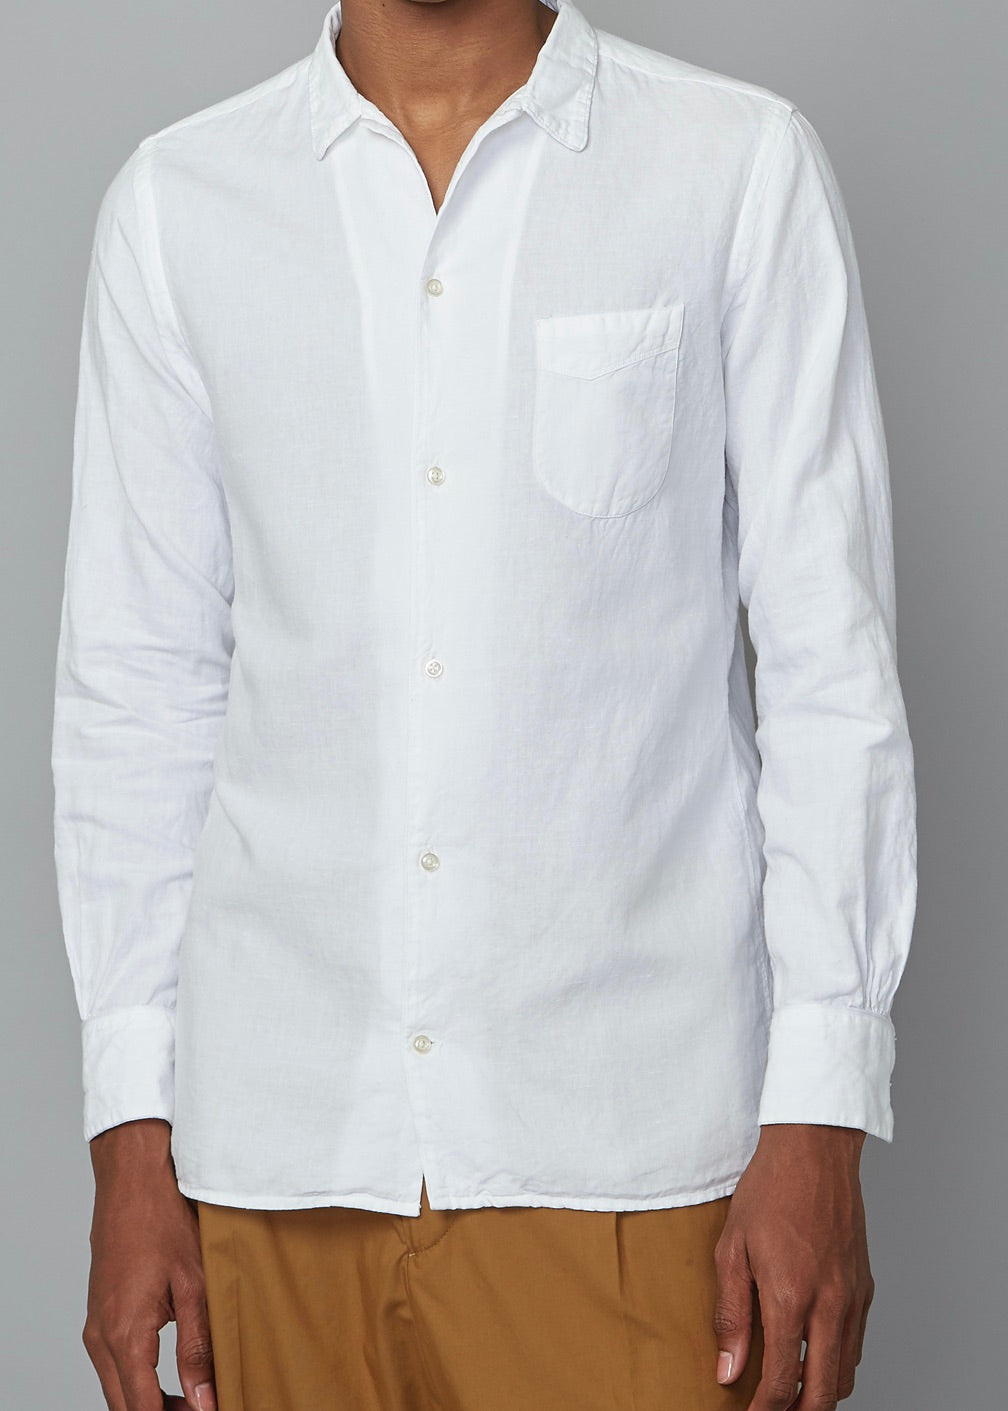 JS Piping Shirt White